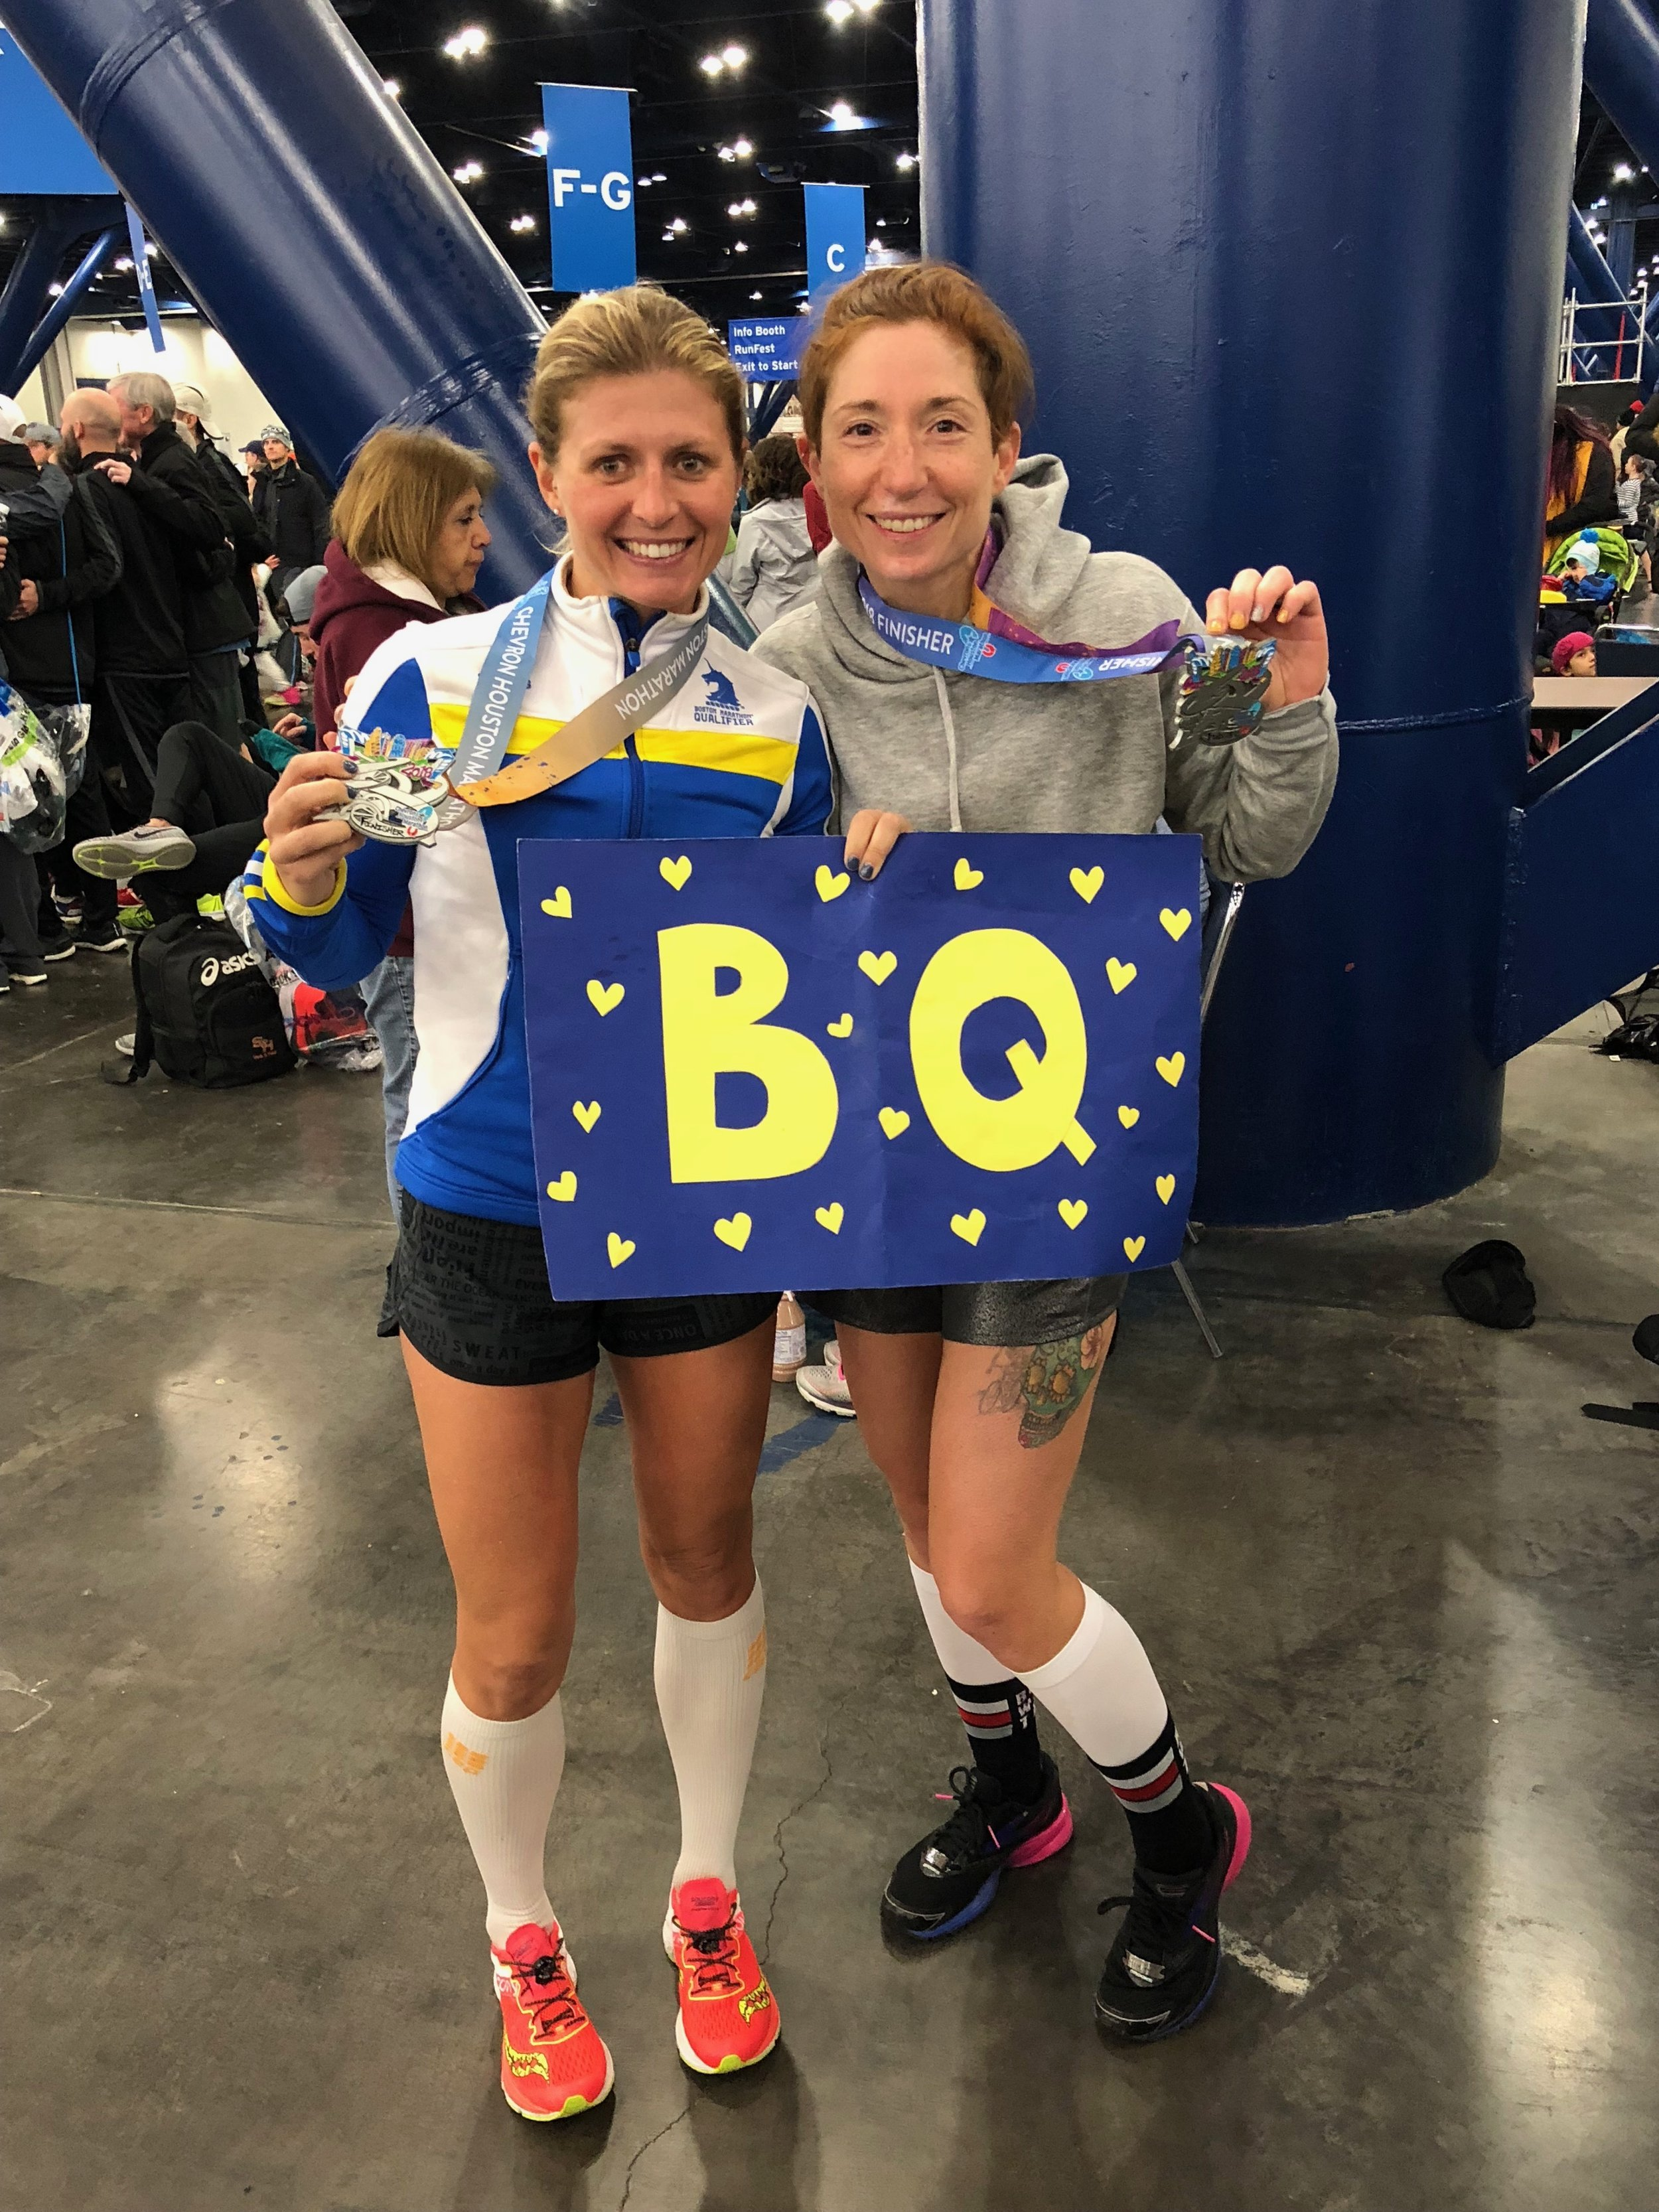 Doreen and I both qualified for Boston. She smashed her BQ time by more than 10 minutes!